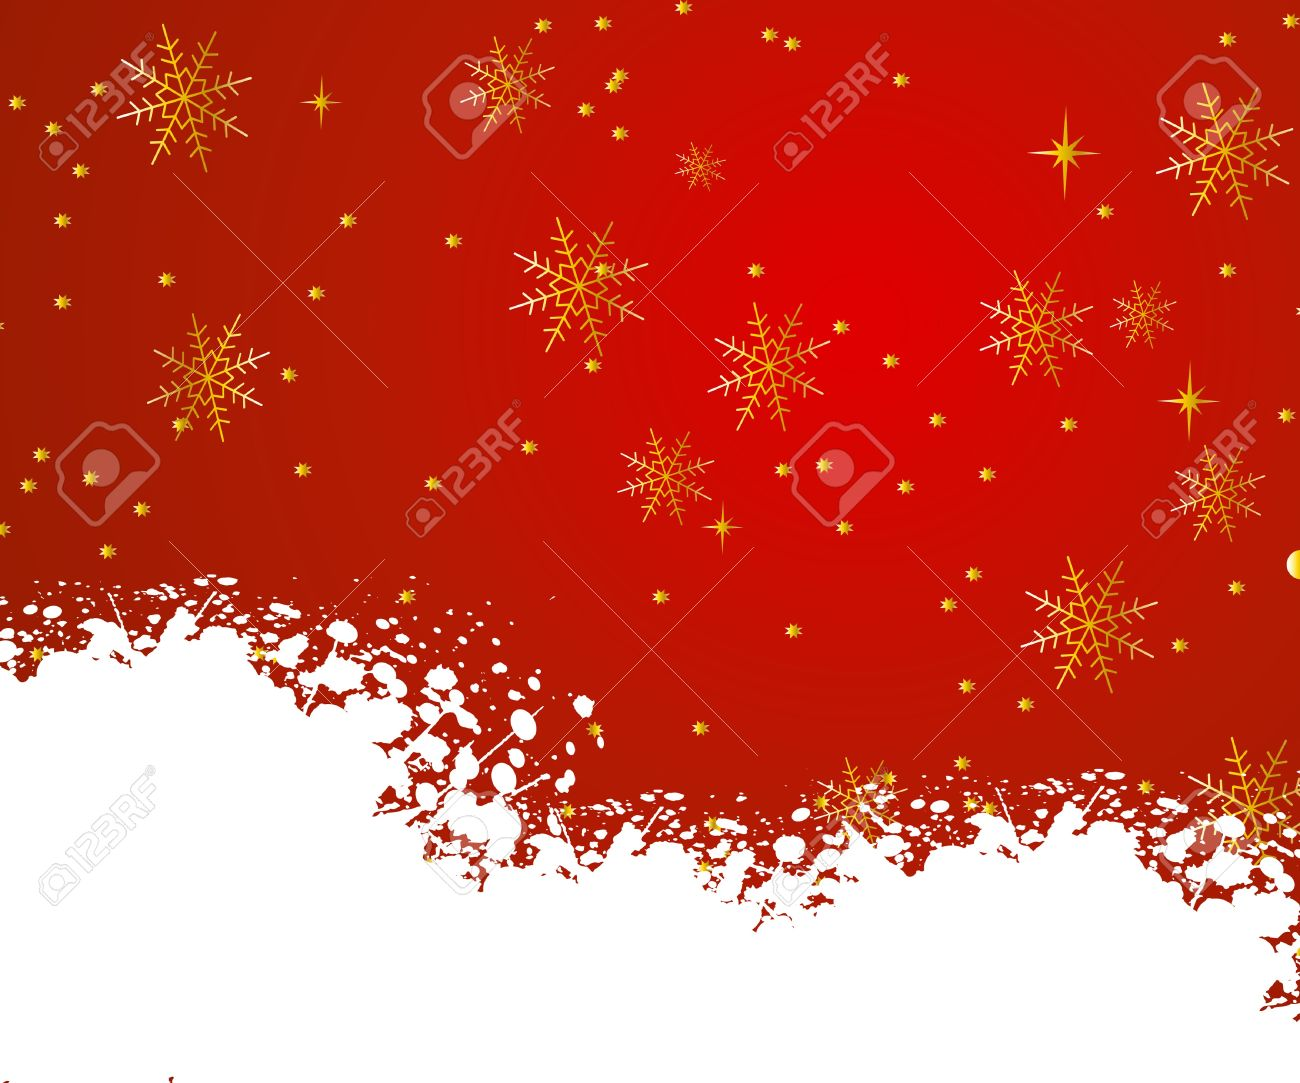 background for new year and christmas royalty cliparts background for new year and christmas stock vector 8298258